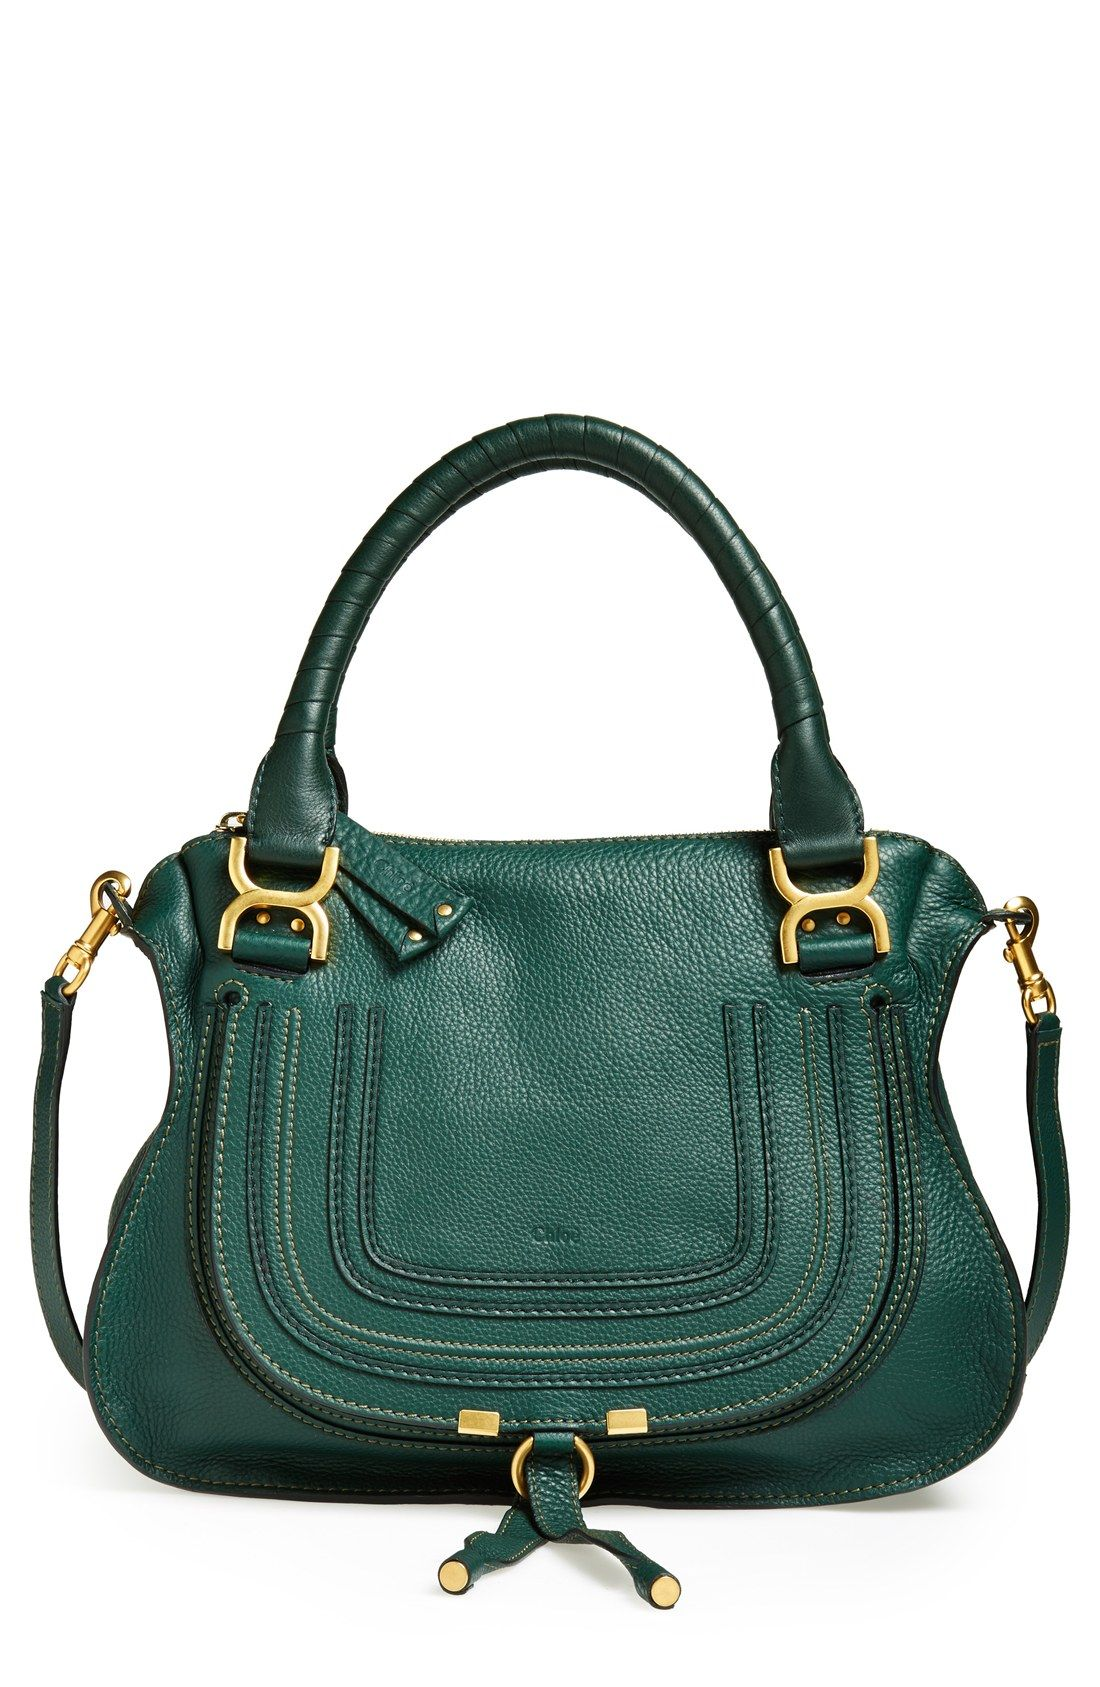 8245f67cc23 Hooked on this green Chloé  Medium Marcie  leather satchel ...